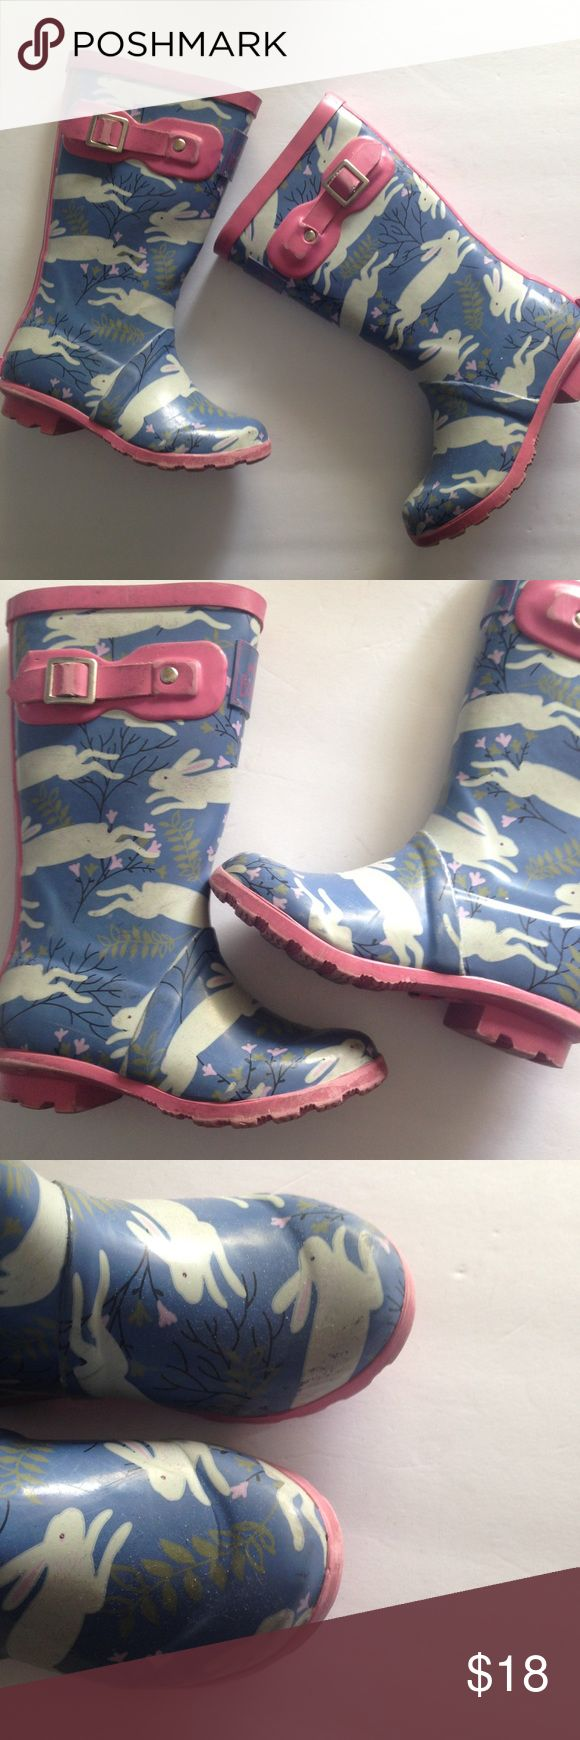 Mini Boden Bunny Wellies Rain Boots A few marks but overall great condition! Toddler girl - 27 EU/ 10 US. Mini Boden Shoes Rain & Snow Boots